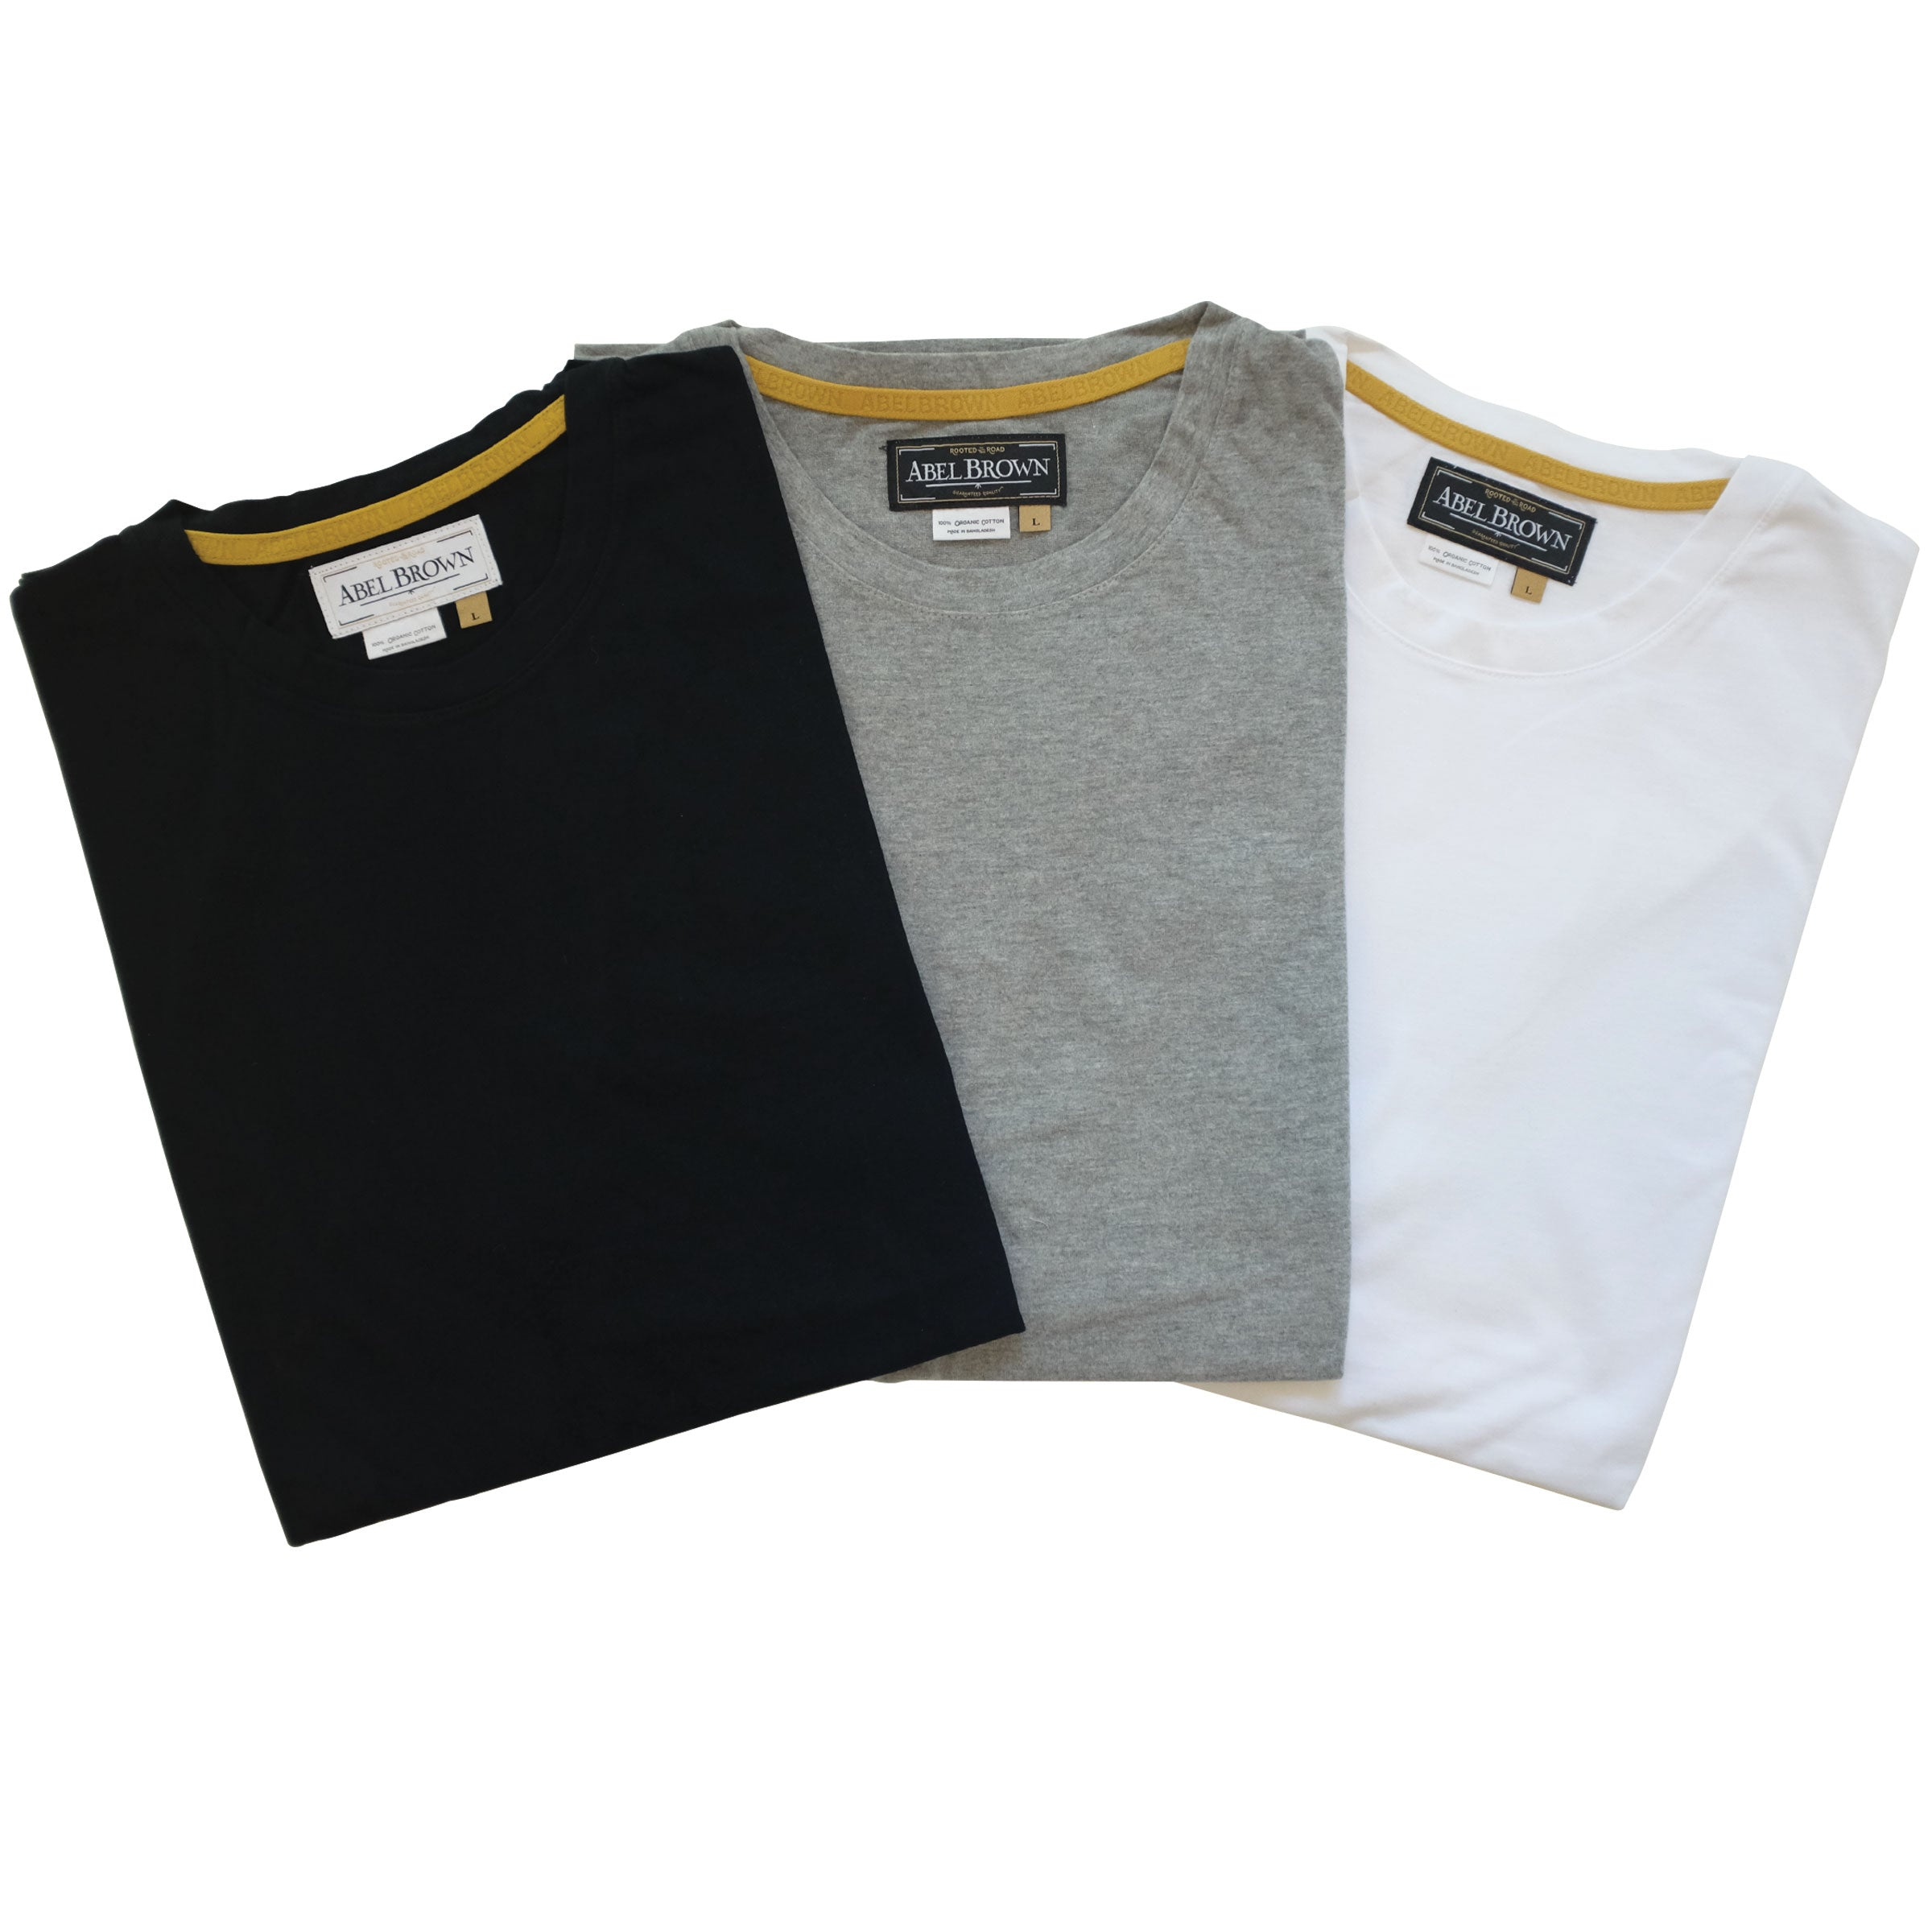 The Abel Brown ulimate perfect tee for guys, made with the finest organic cotton, and fits like the best tee shirt ever